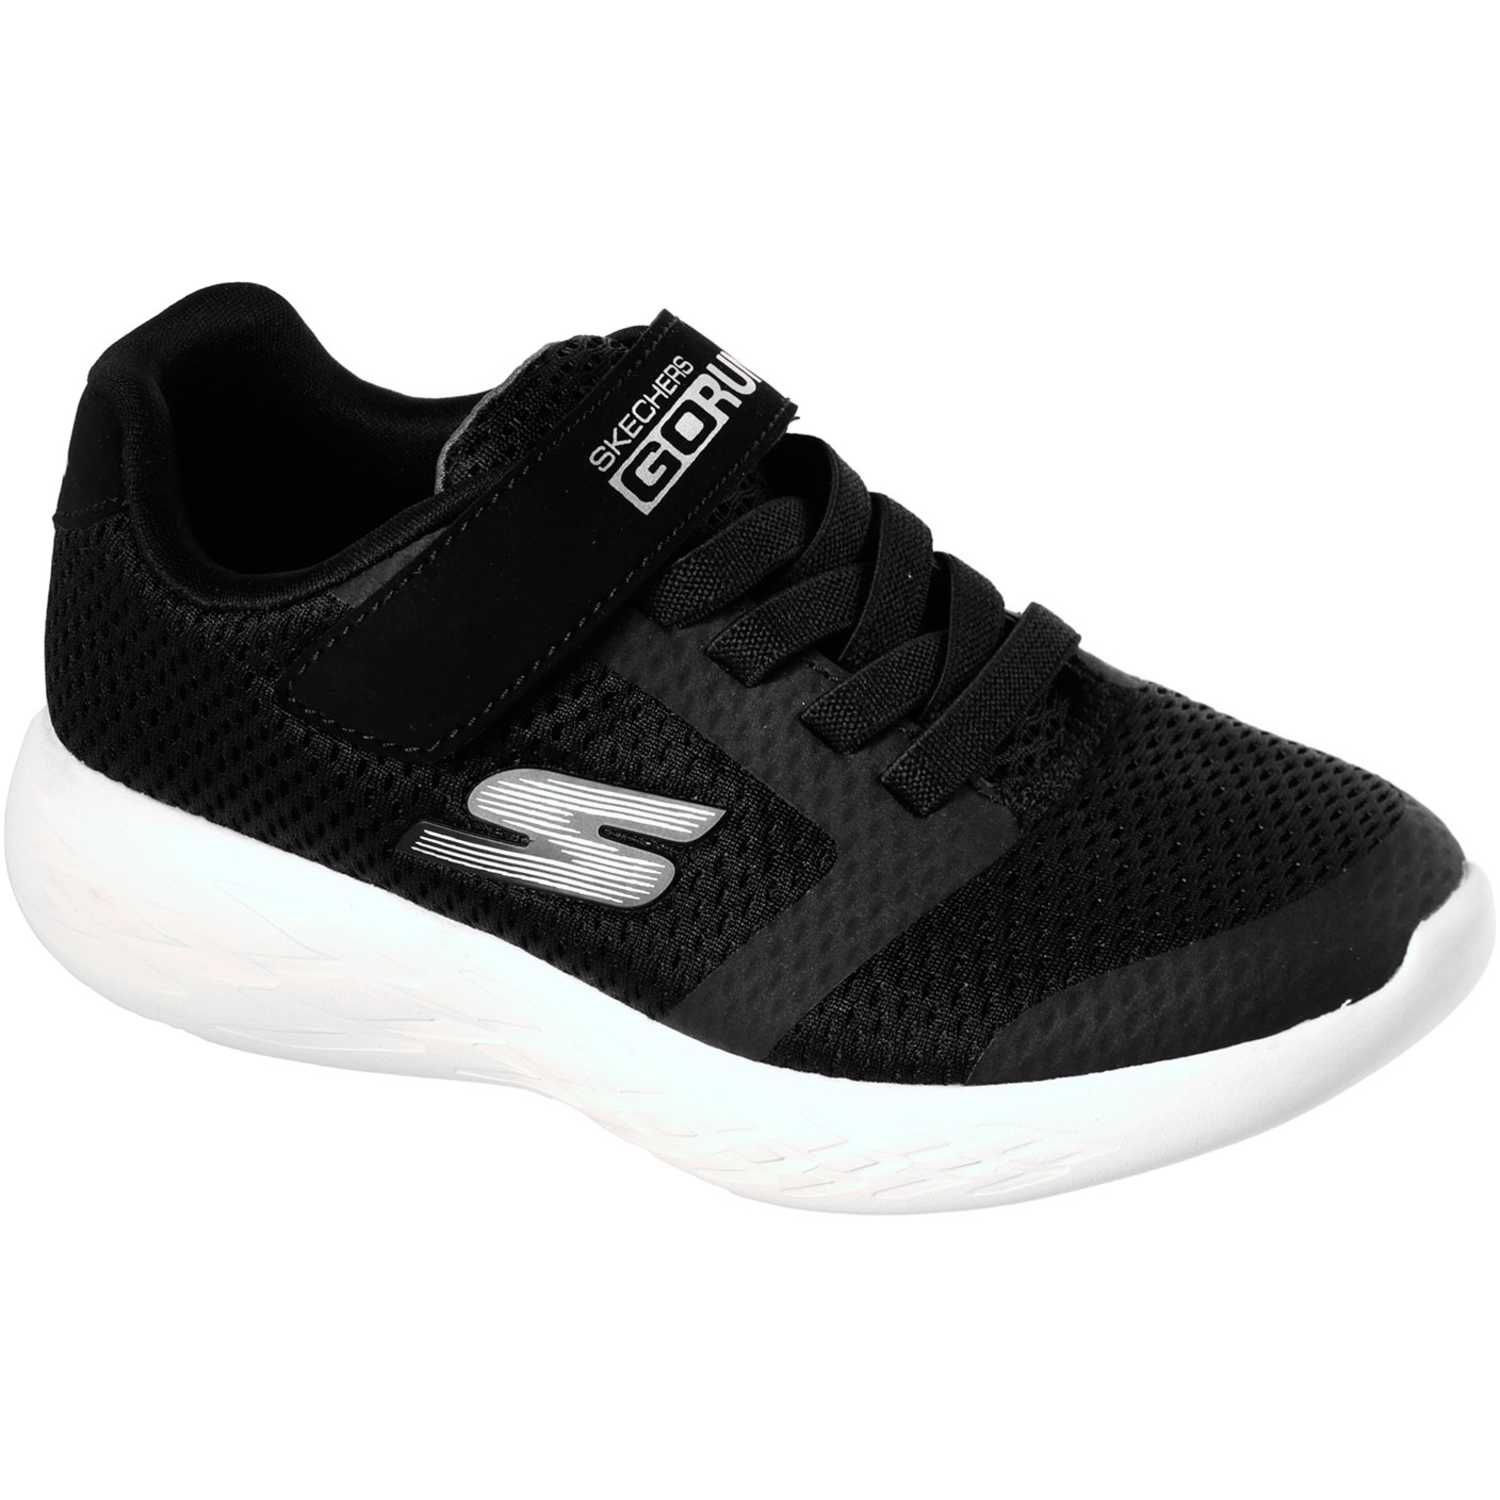 Skechers go run 600 - roxlo Negro Walking